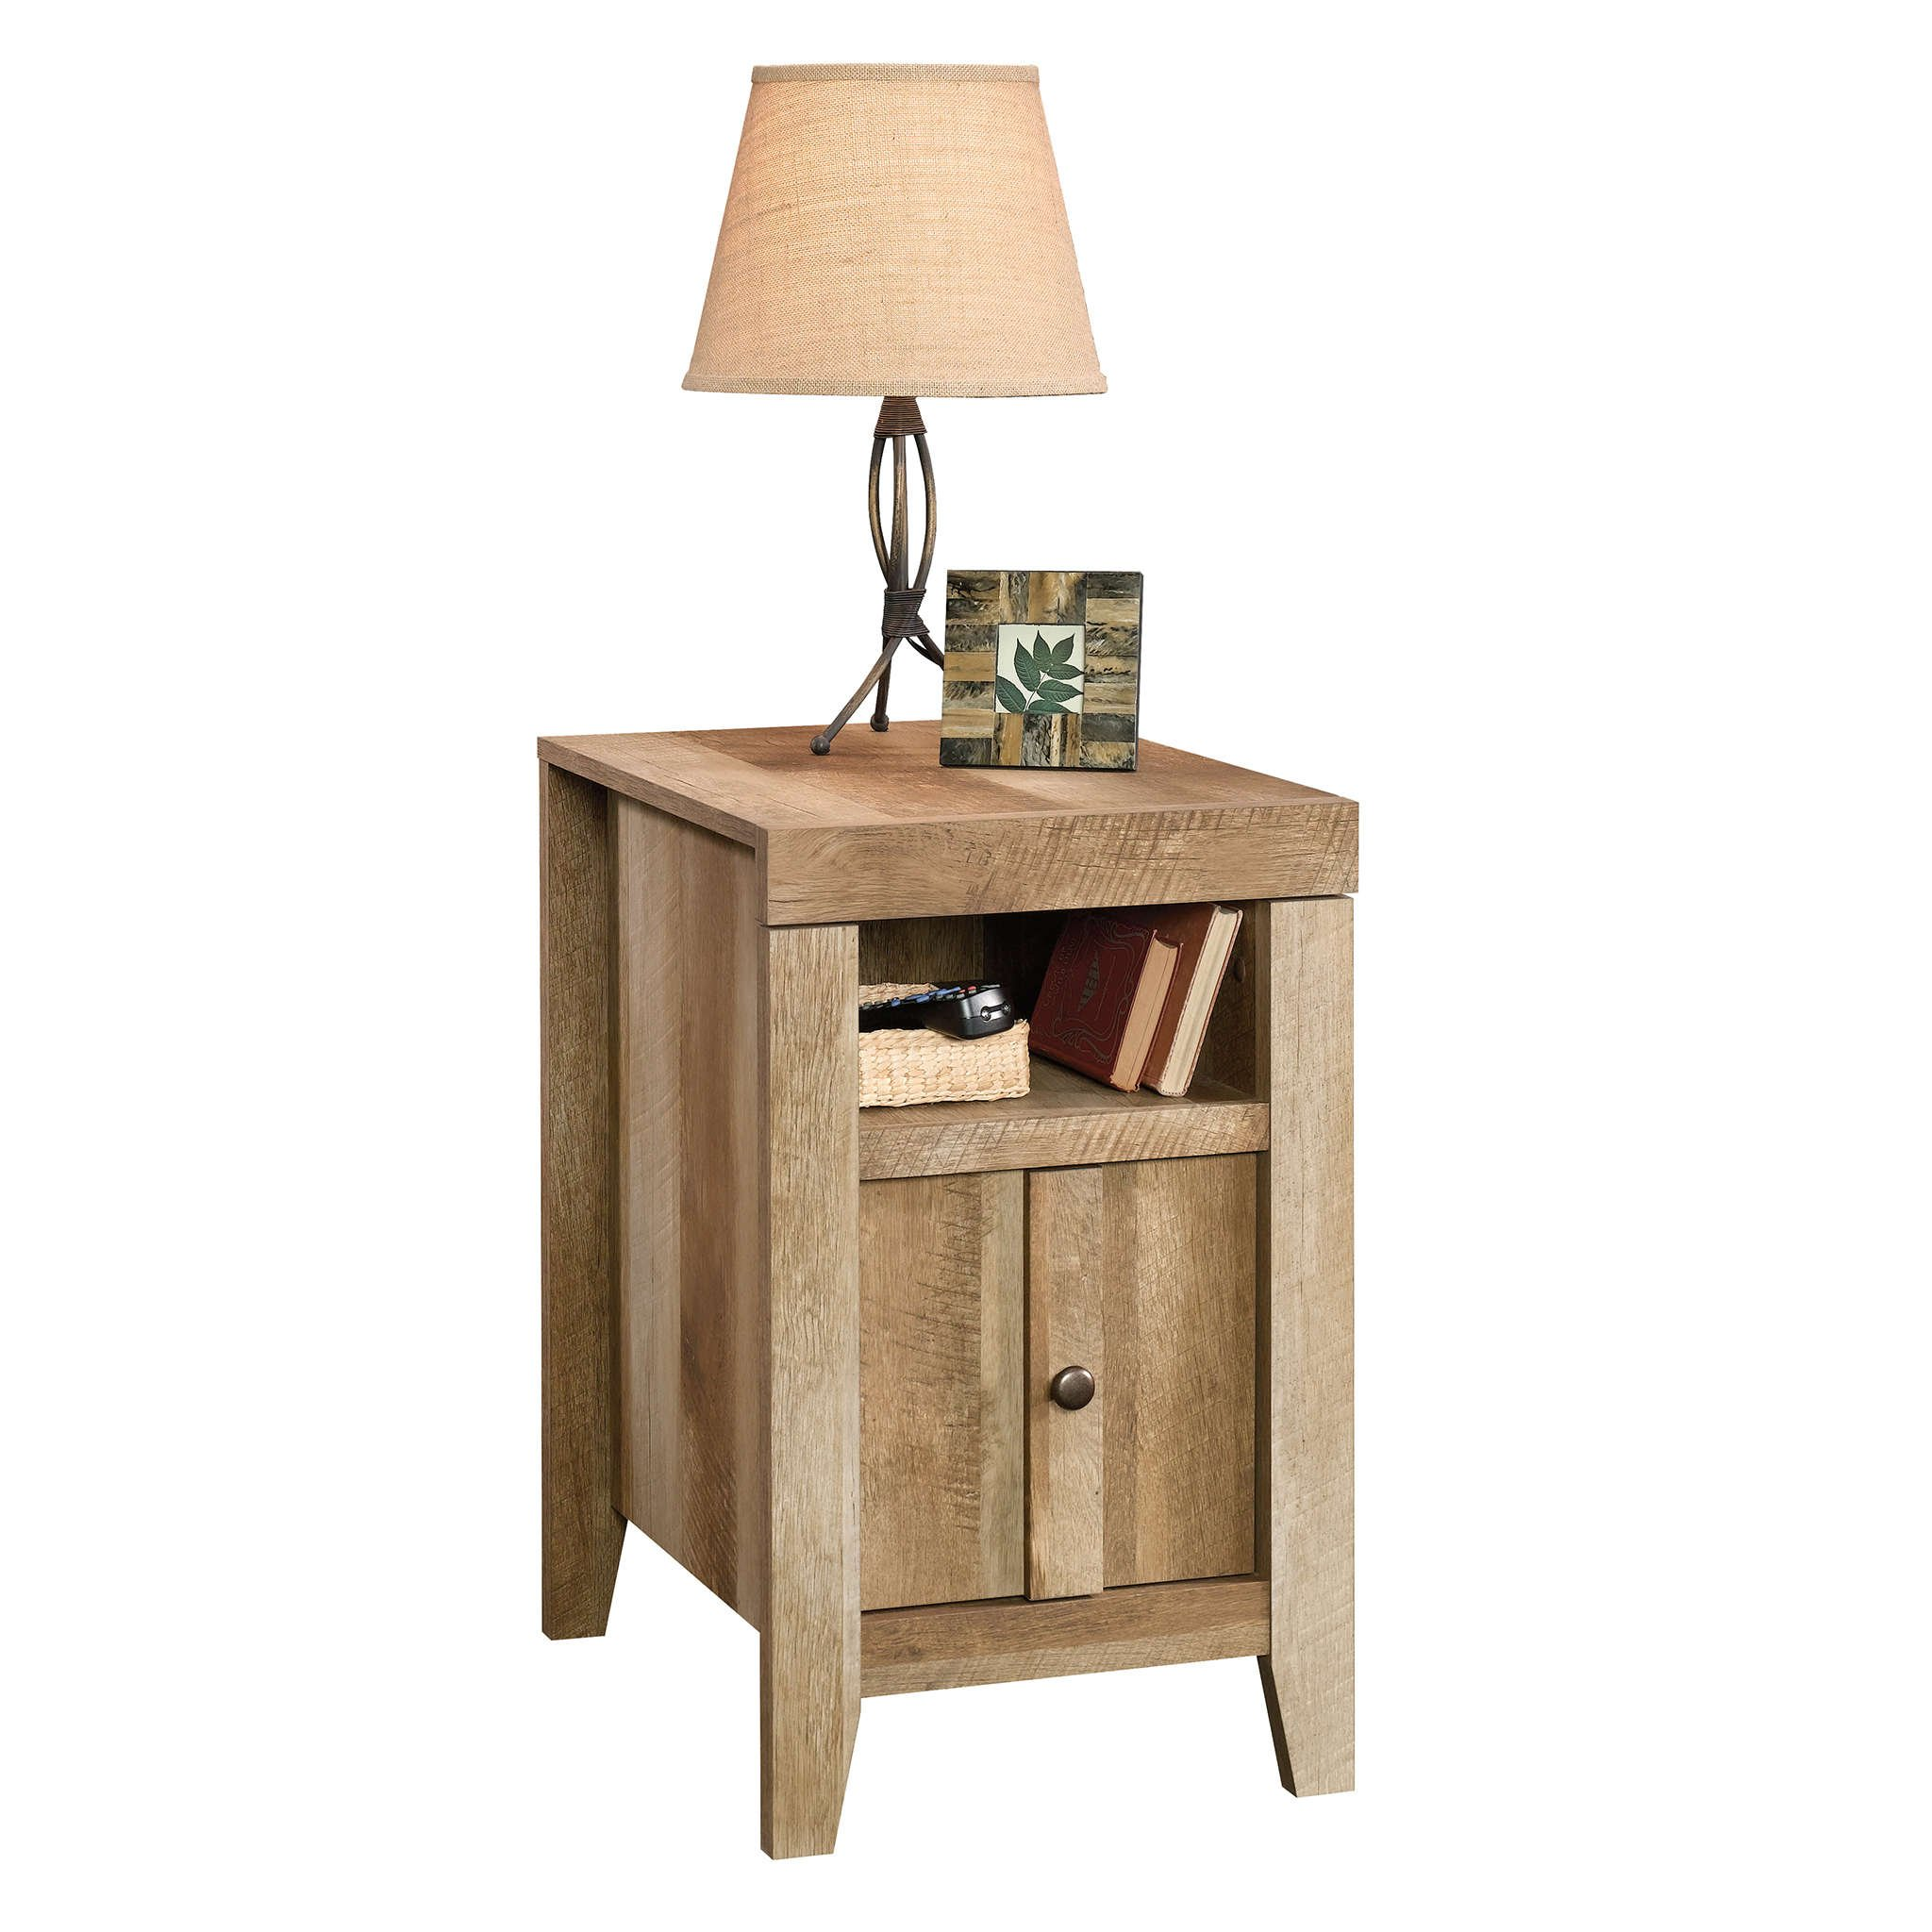 Sauder 420139 Side Table, Furniture, Craftsman Oak